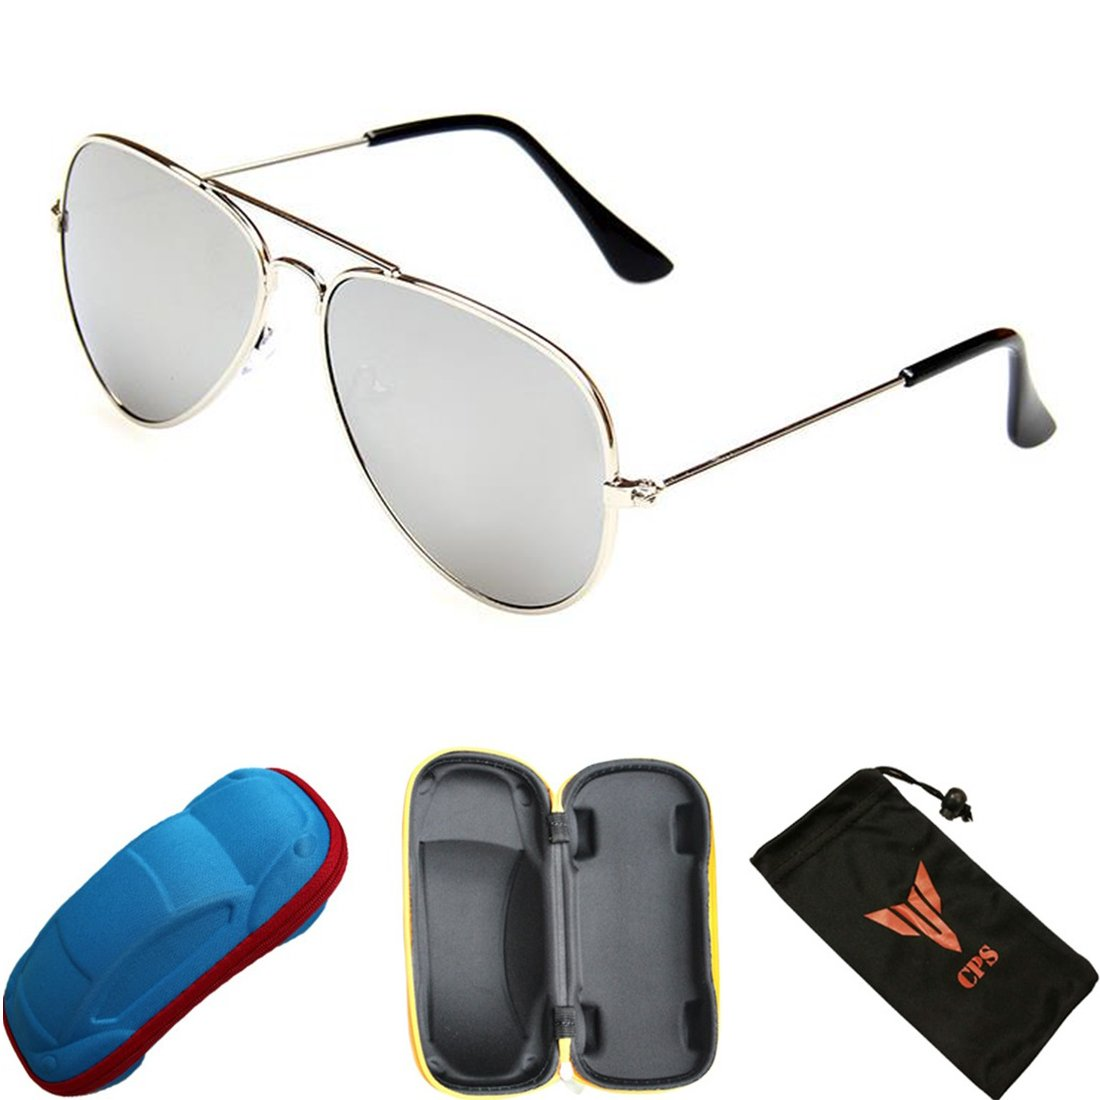 1 Pair Kids Children Youth Sunglasses Silver Mirrored Lens With Car Storage Carrying Case (Aviator Glasses, Non-Polarized)